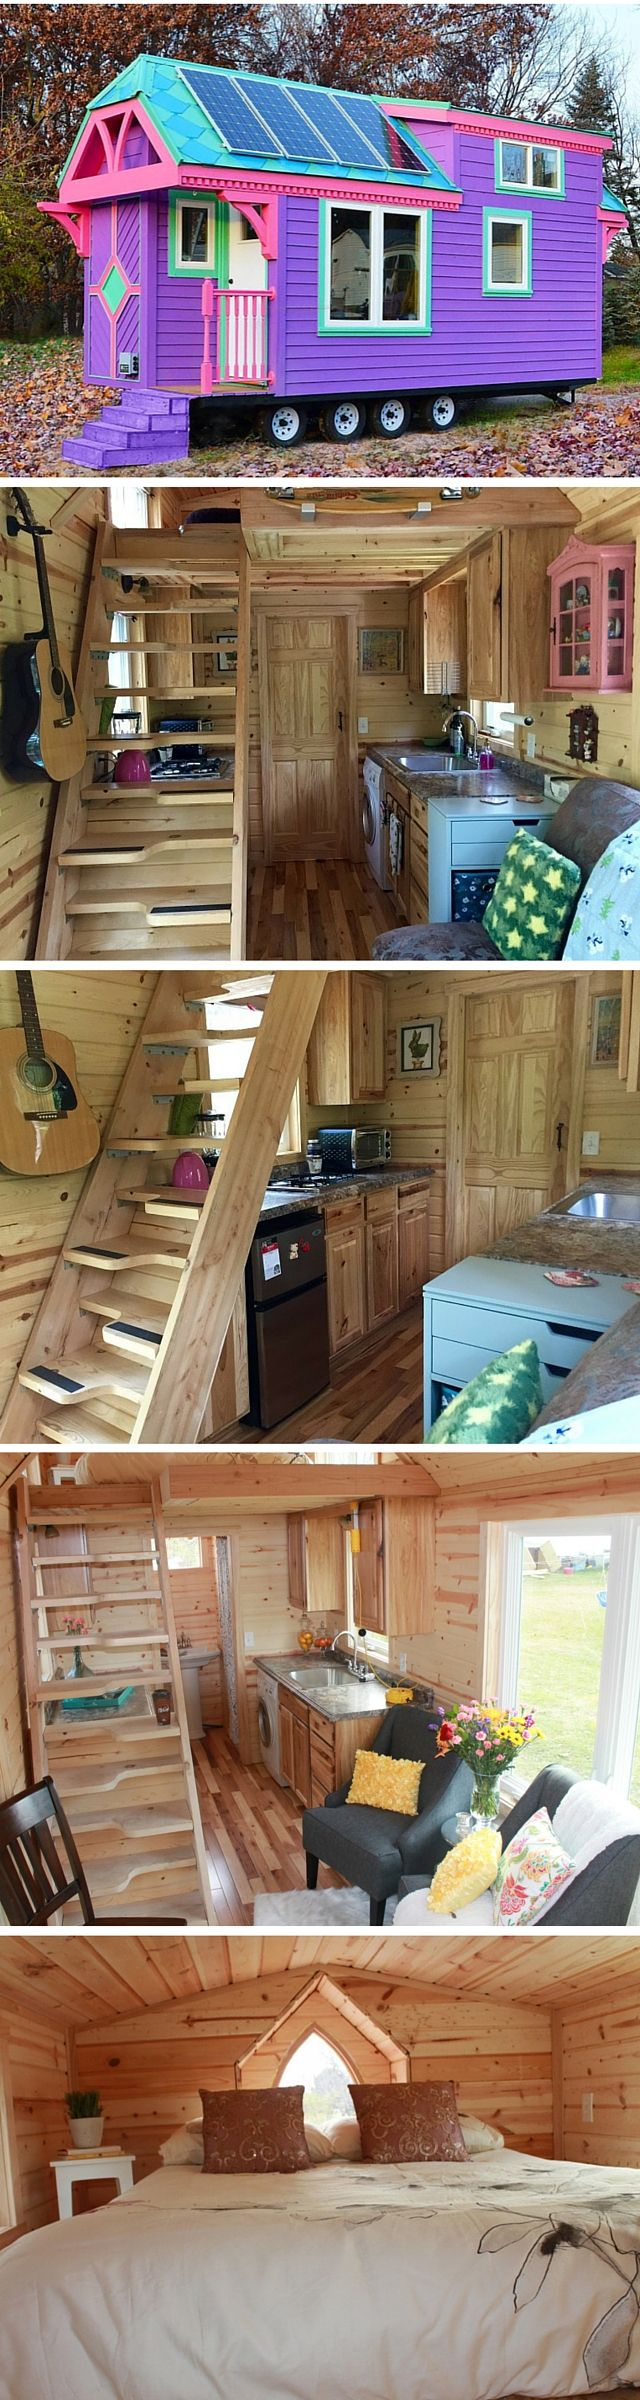 The Ravenlore: a 240 sq ft tiny house -- Ooooh, I love the exterior of this one!!! My husband and I should get side-by-side tiny houses. Then I won't have to hear him snore. :) Tjis will be mine and his can be solid black.